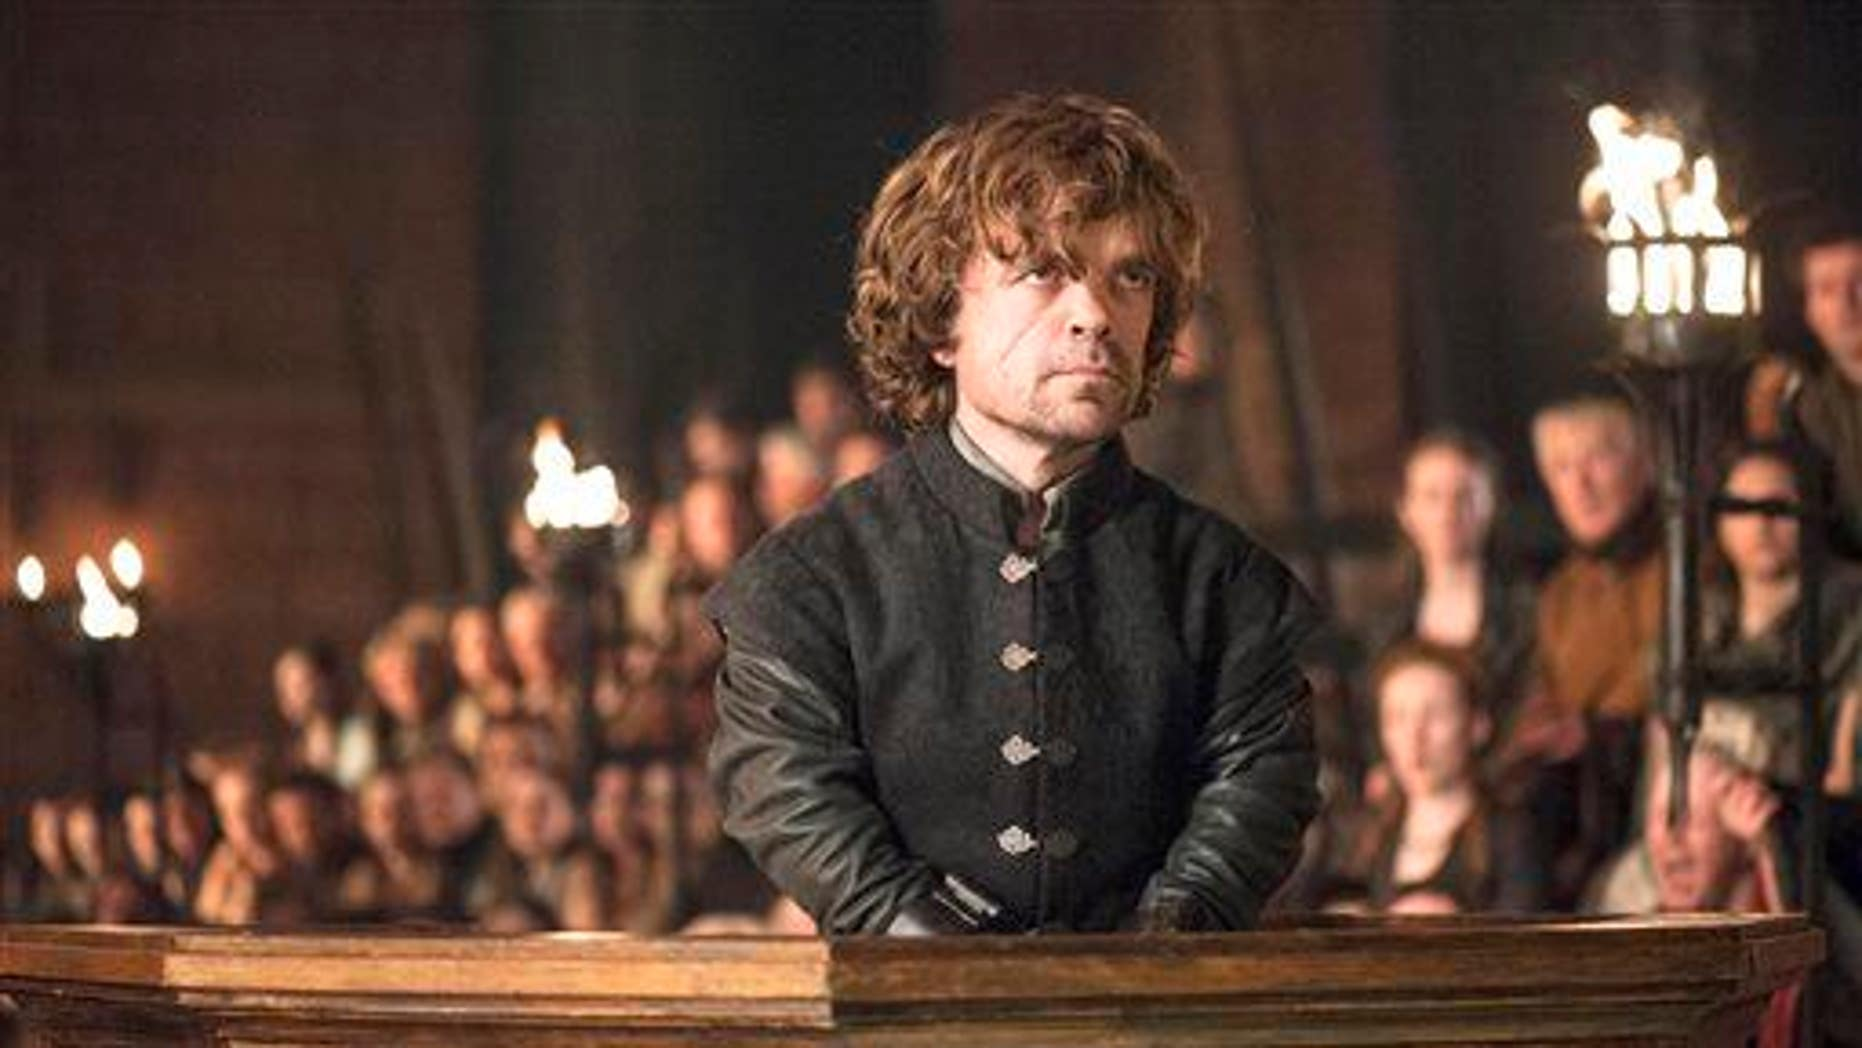 """Peter Dinklage as Tyrion Lannister in a scene from season 4 of """"Game of Thrones."""""""